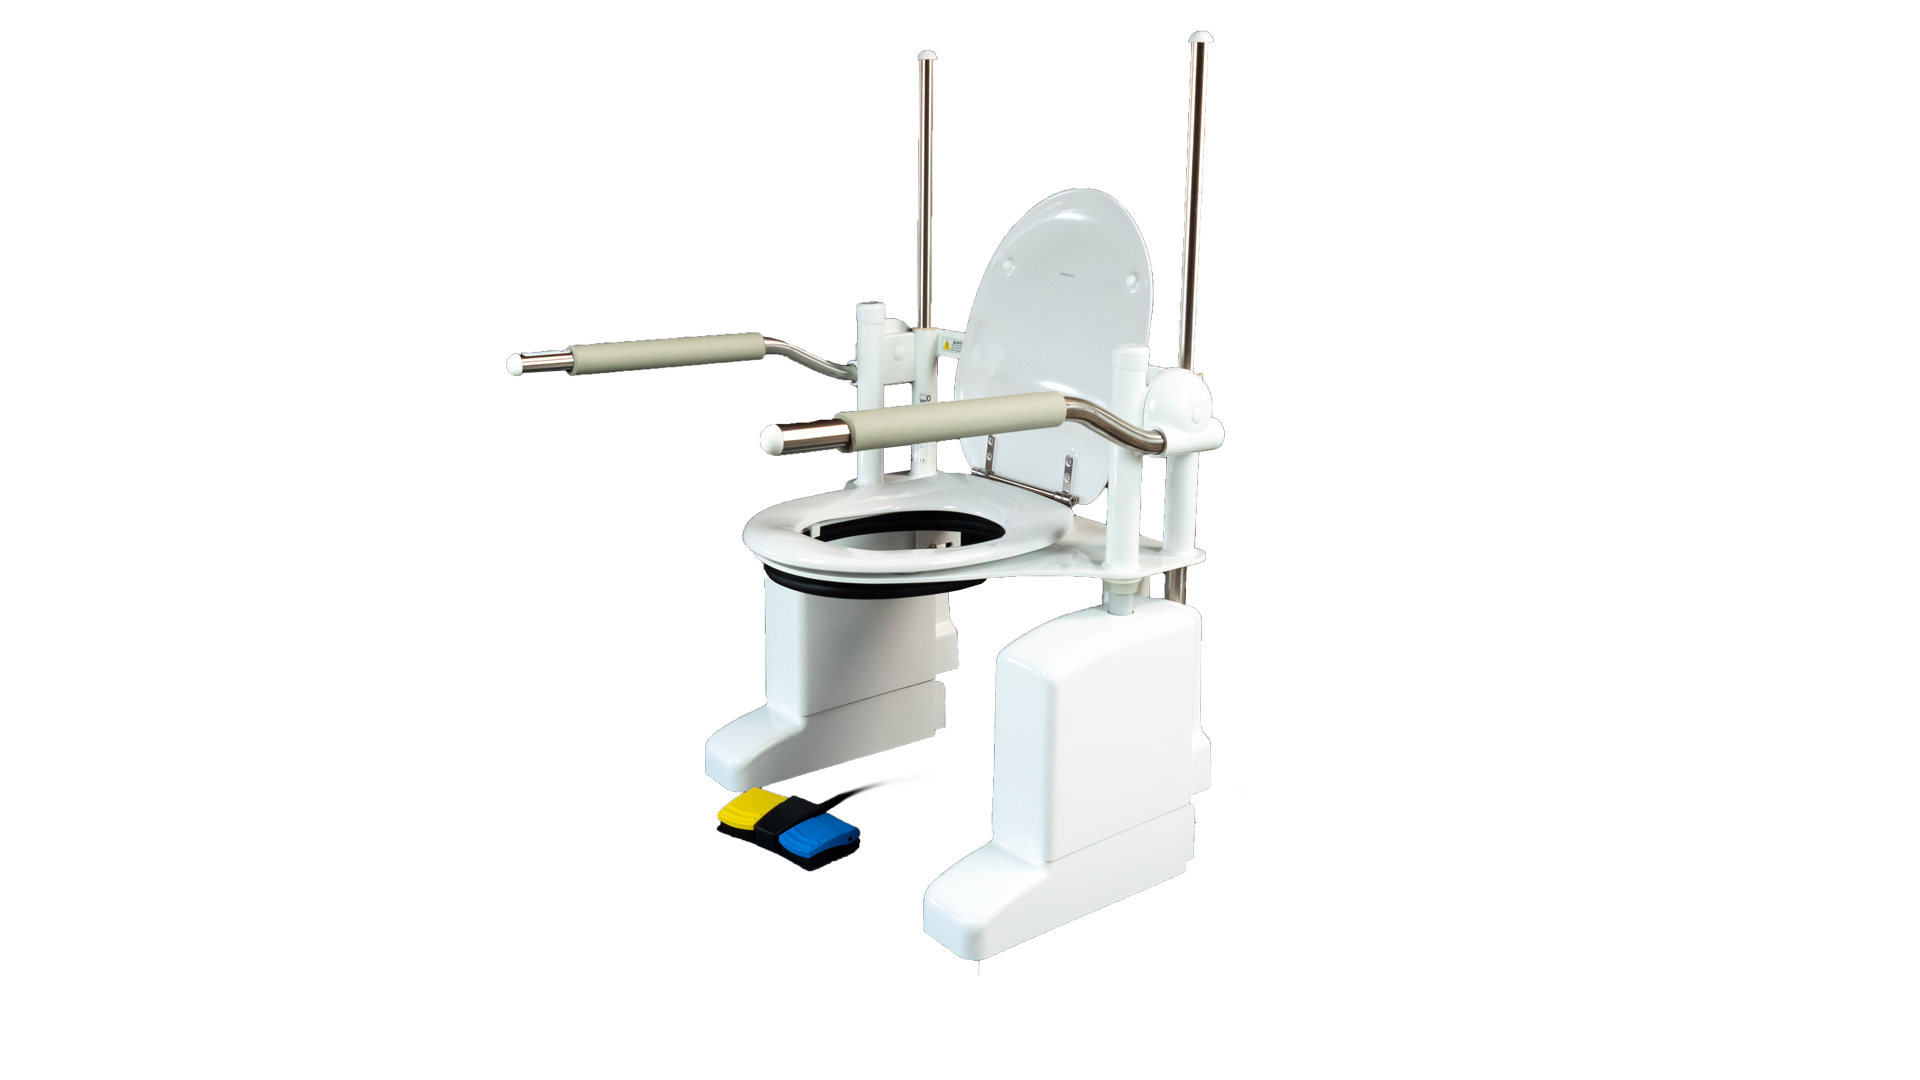 Aerolet® Toilettenlift als vertikal Lift